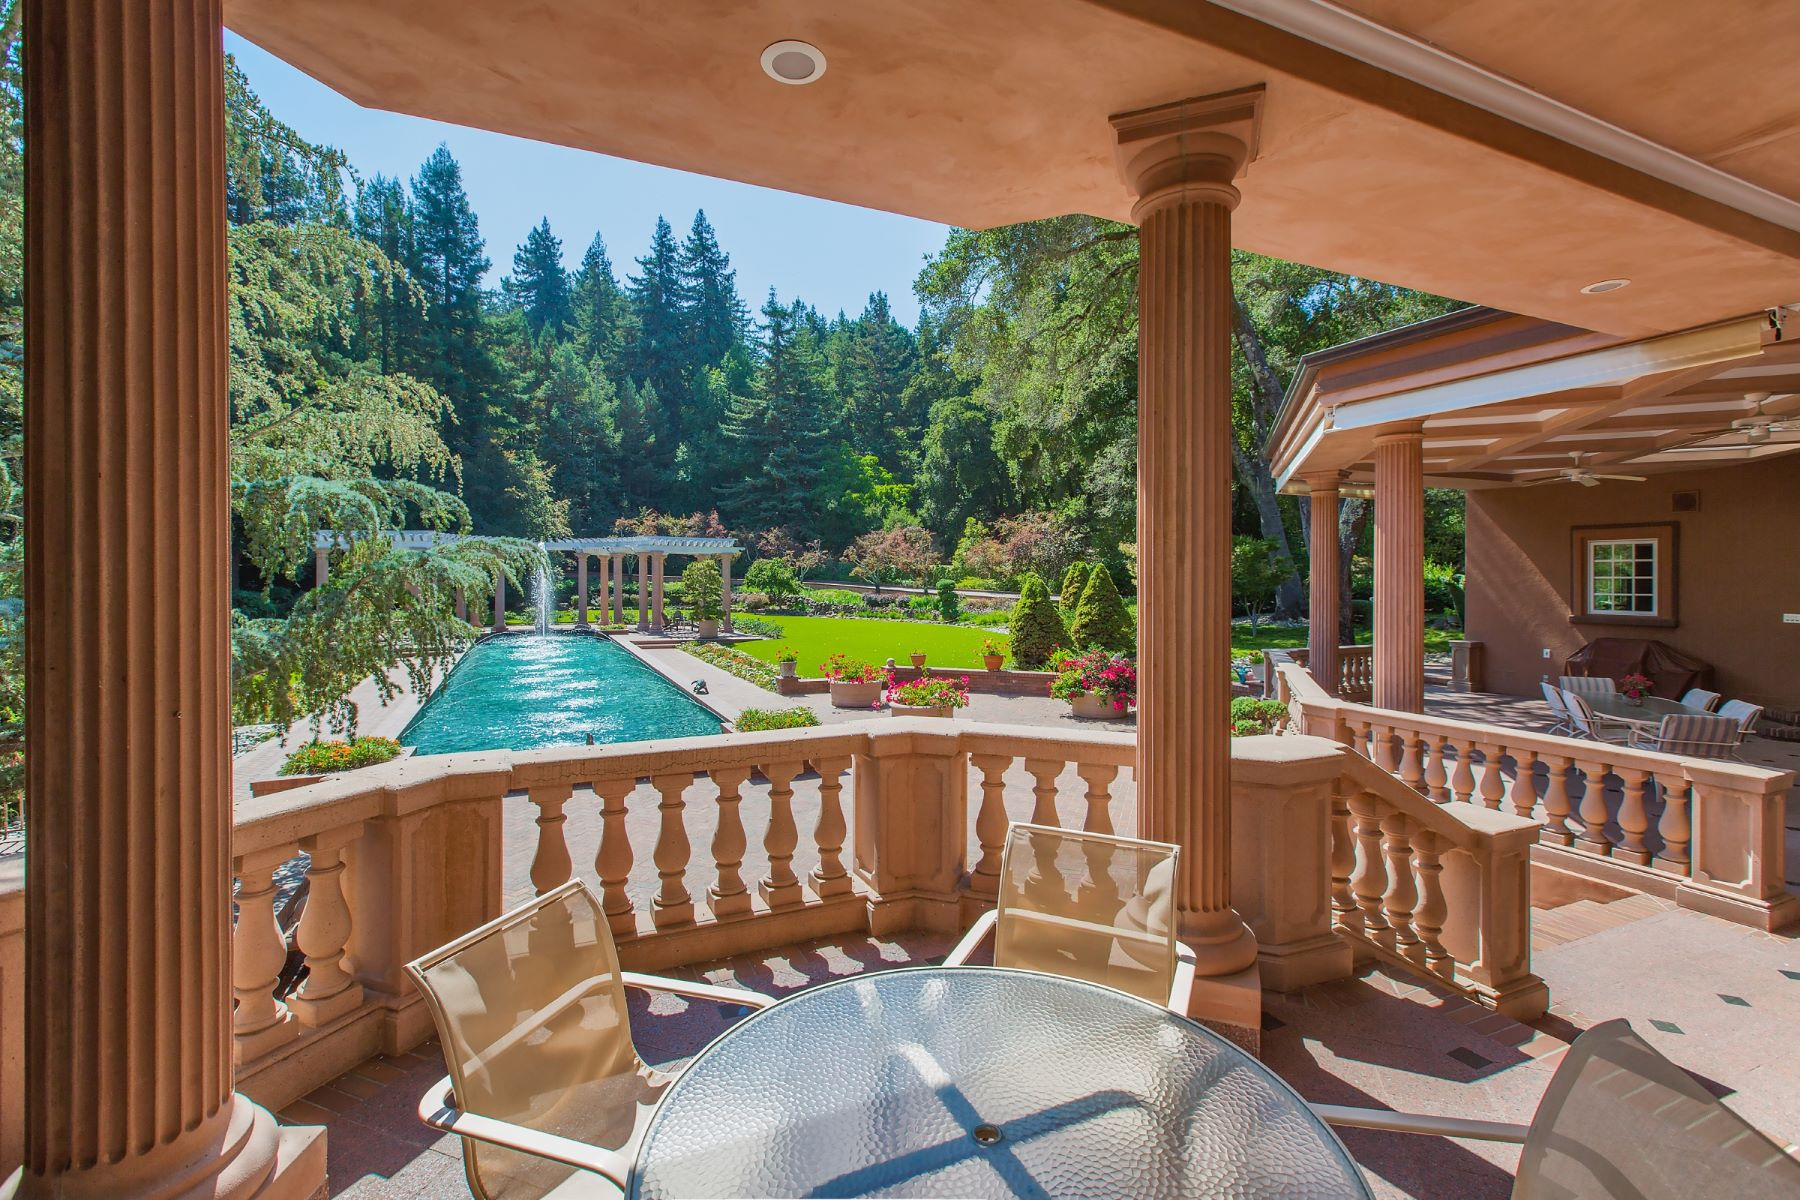 Additional photo for property listing at Woodhaven Manor 700 Kings Mountain Road Woodside, California 94062 United States